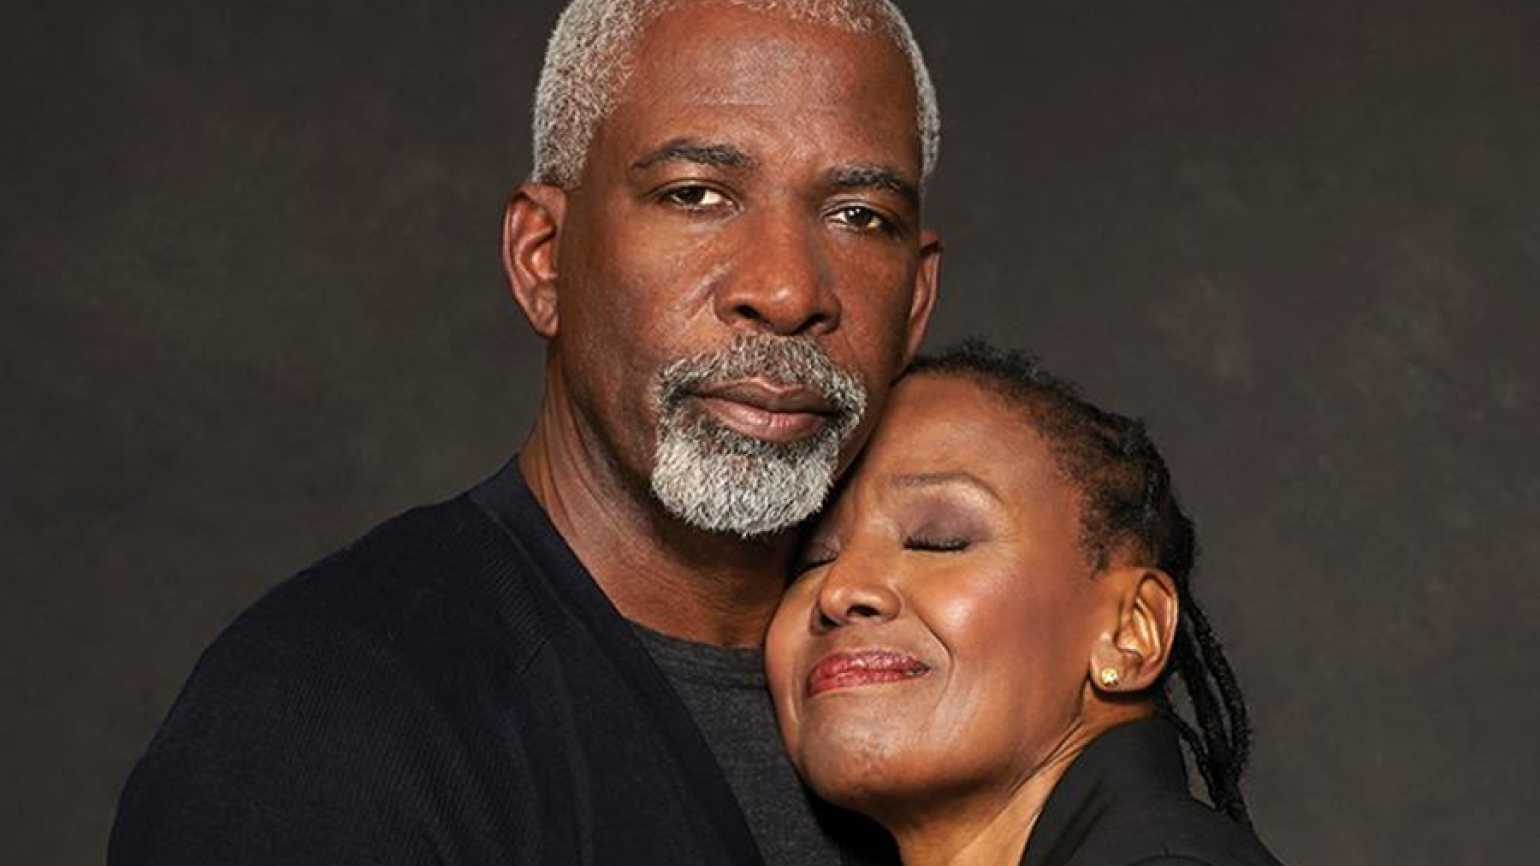 Caring for B. Smith: Dan Gasby Speaks on Their Fight Against Alzheimer's